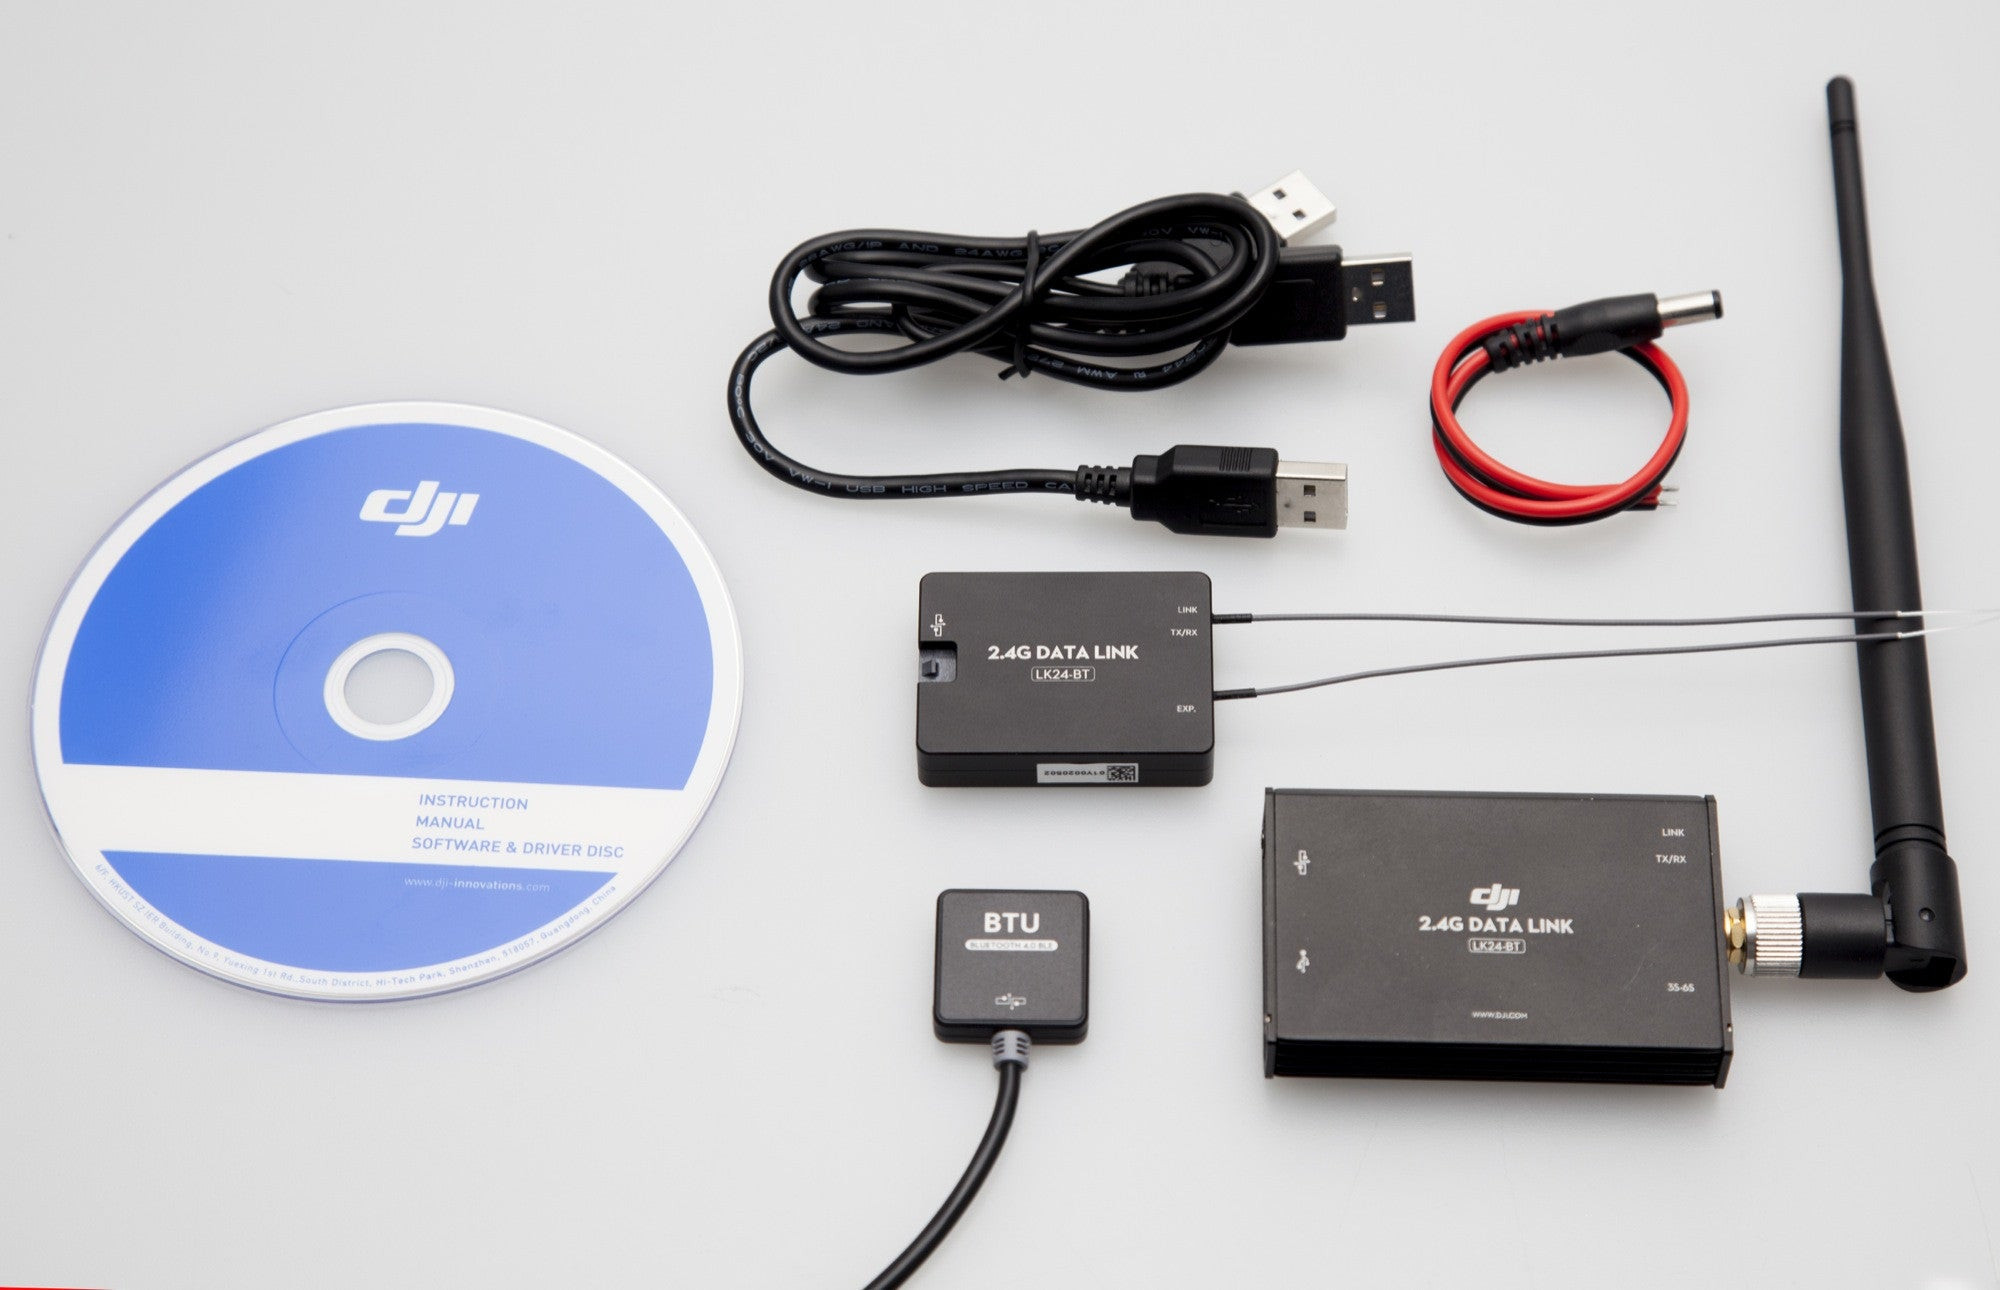 IOSDmini+2.4GBT Datalink(IPAD)+CAN-HUB - Drone Shop Canada - Professional UAV Sales Repair